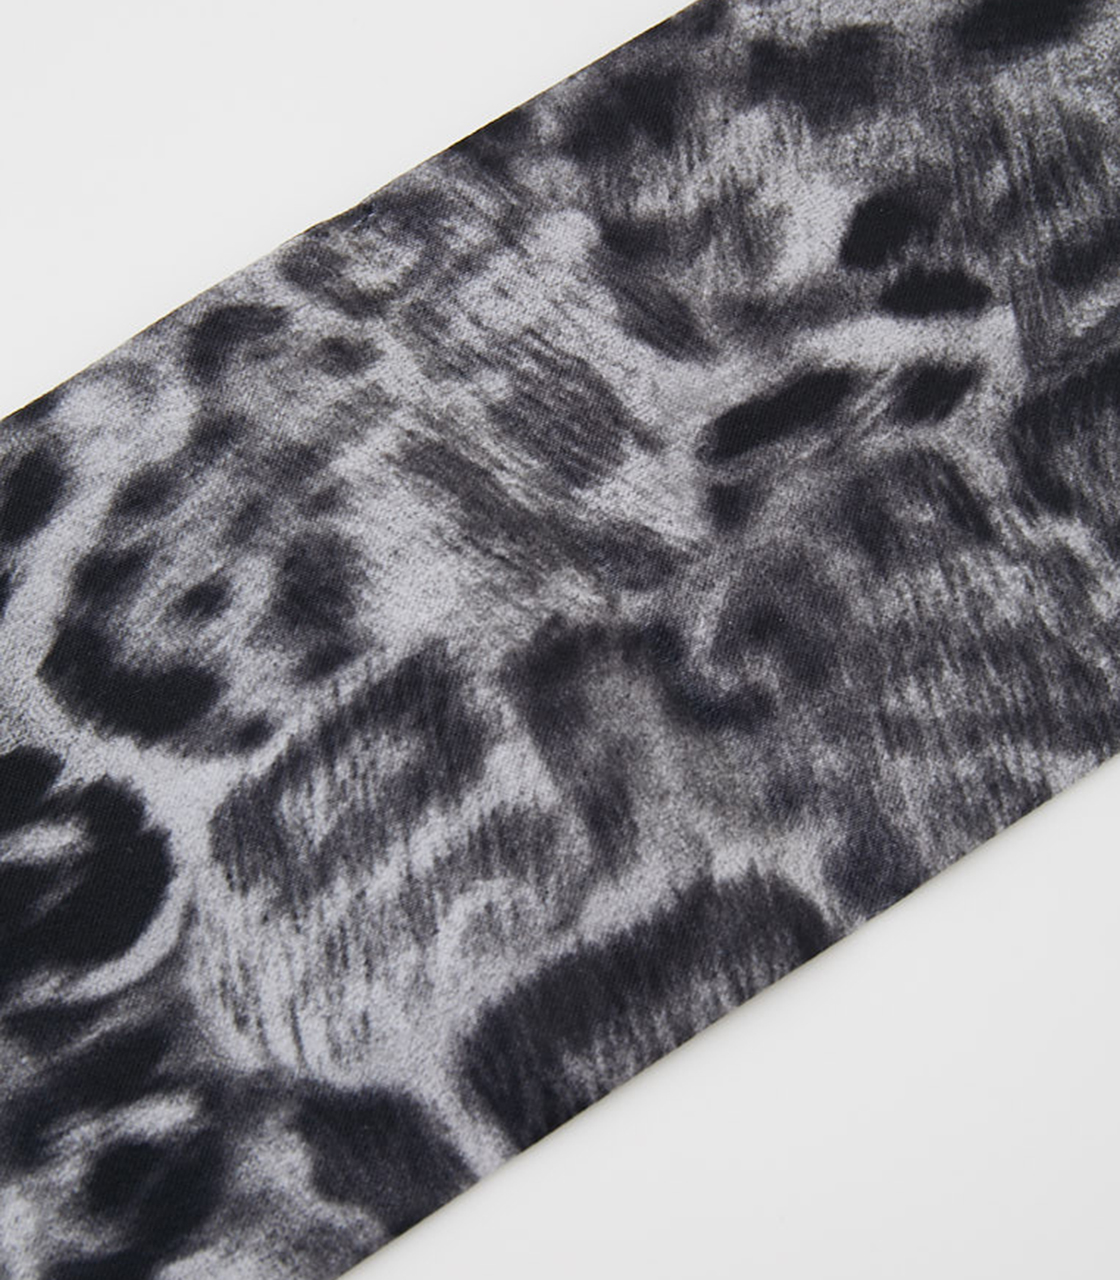 LEOPARD SCARF NECKLACE/レオパードスカーフネックレス 詳細画像 柄GRY 6